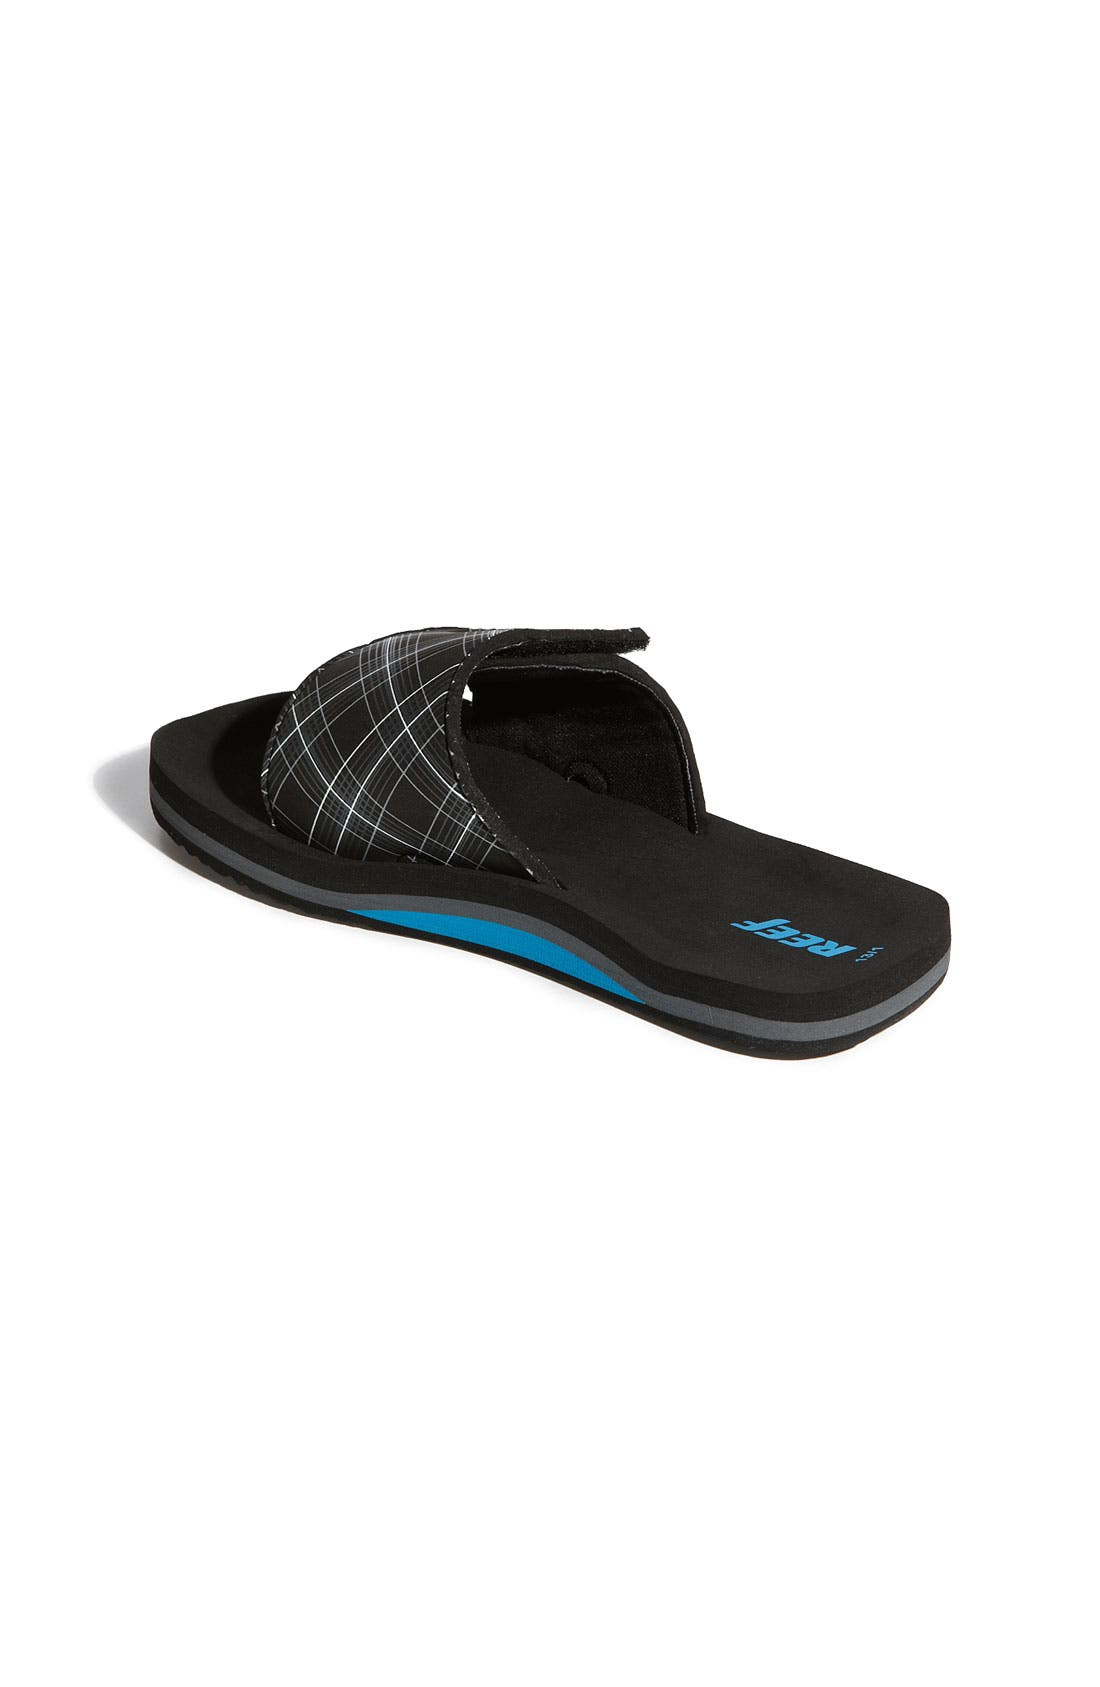 Alternate Image 2  - Reef 'Grom Ahi' Slide Sandal (Walker, Toddler, Little Kid & Big Kid)